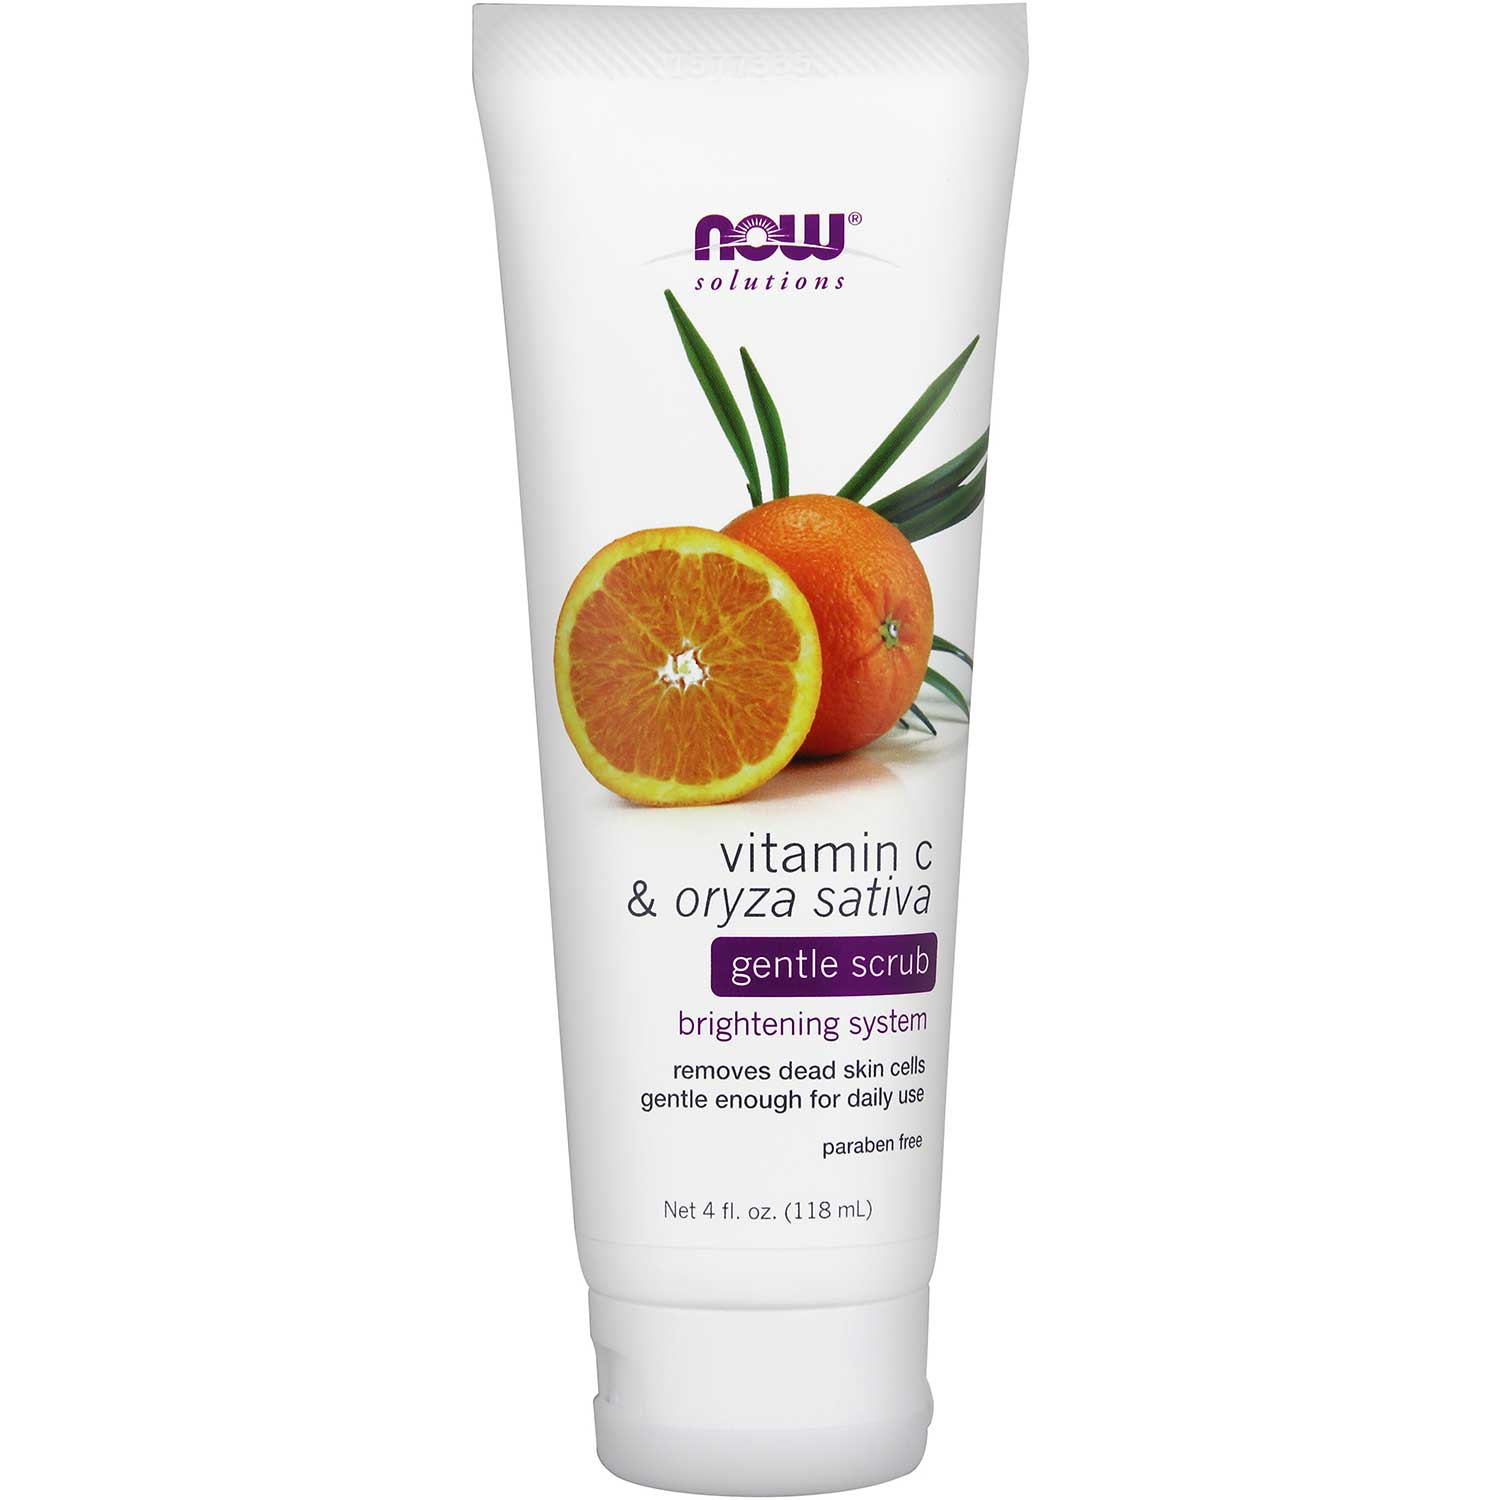 NOW Solutions Vitamin C Oryza Sativa Gentle Scrub, 118ml